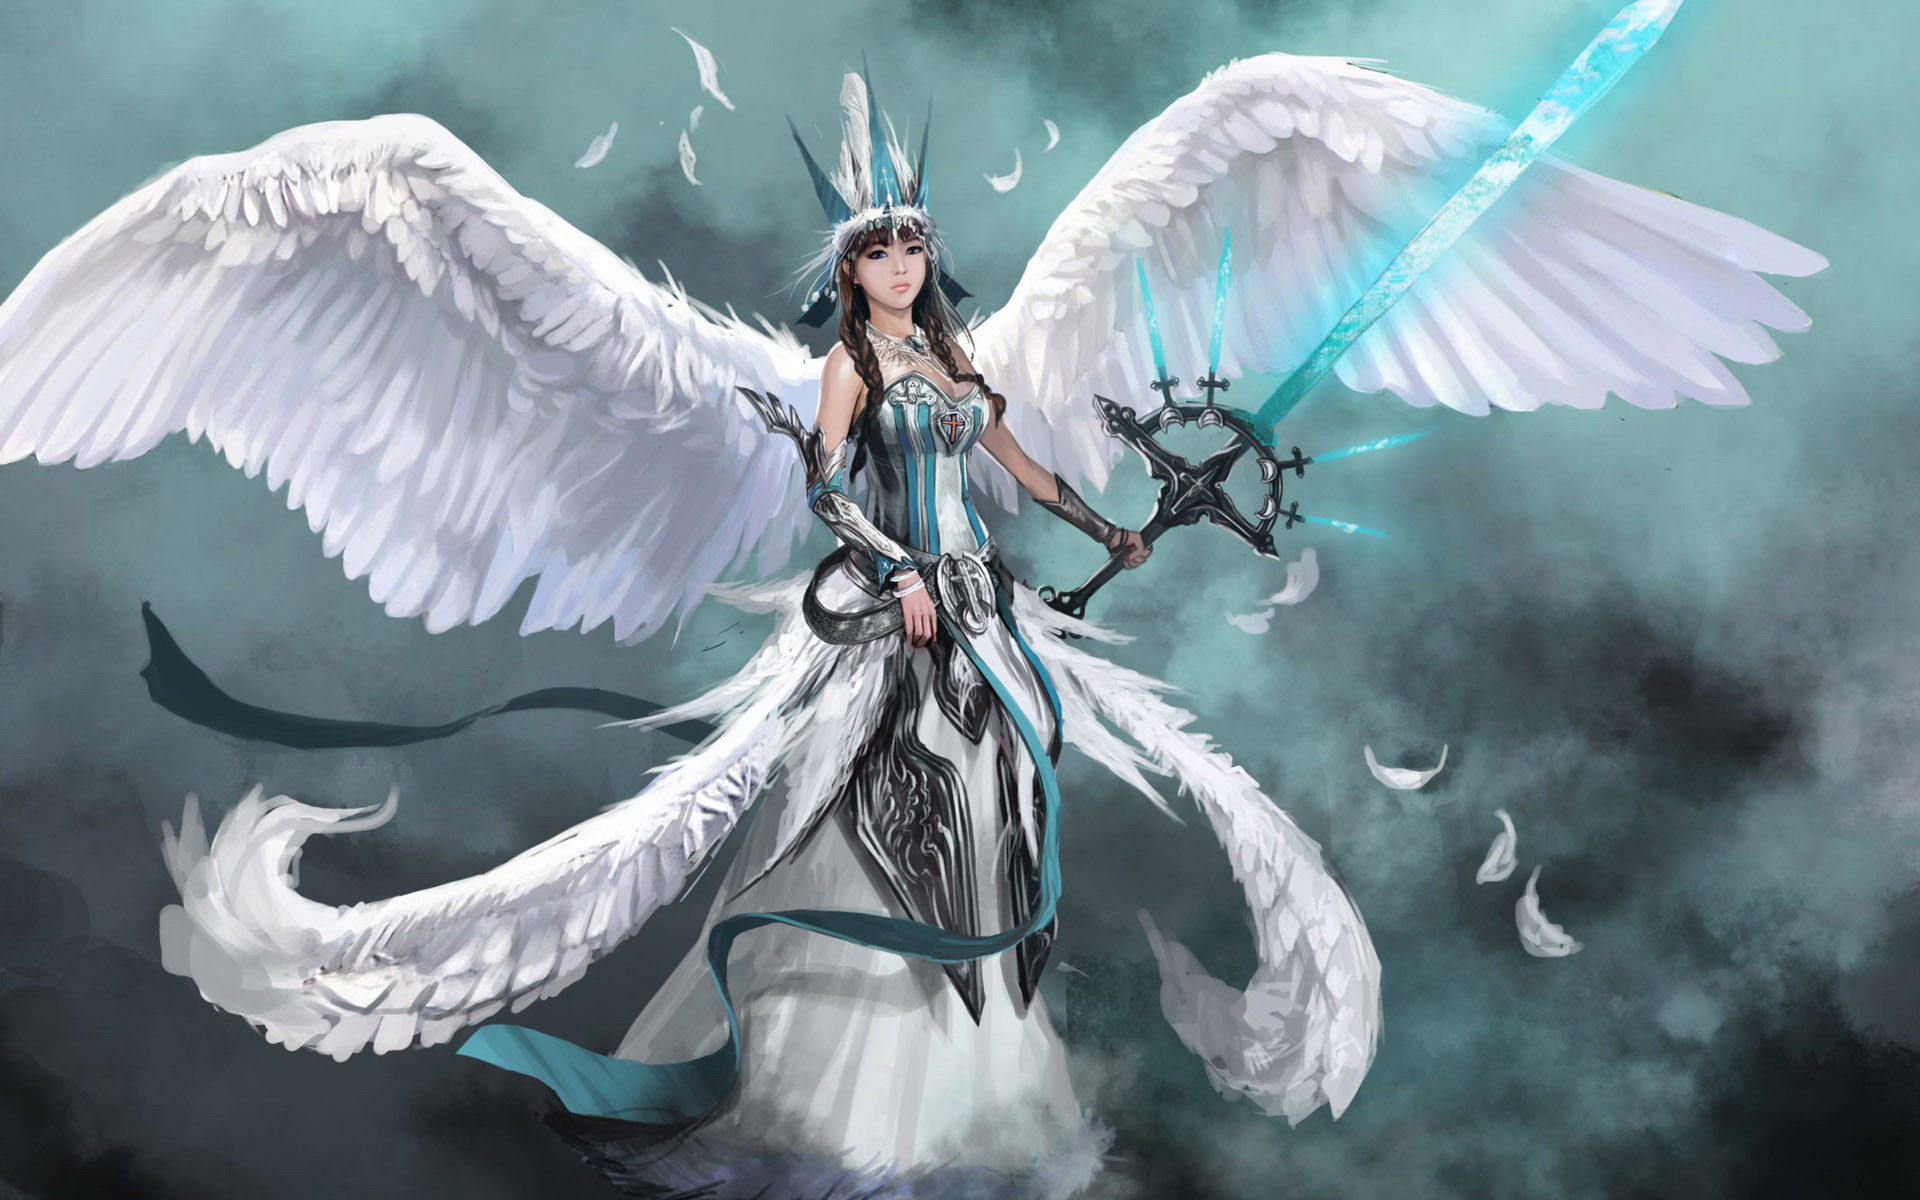 1920x1200 Angel Warrior Fantasy Hd Wallpaper